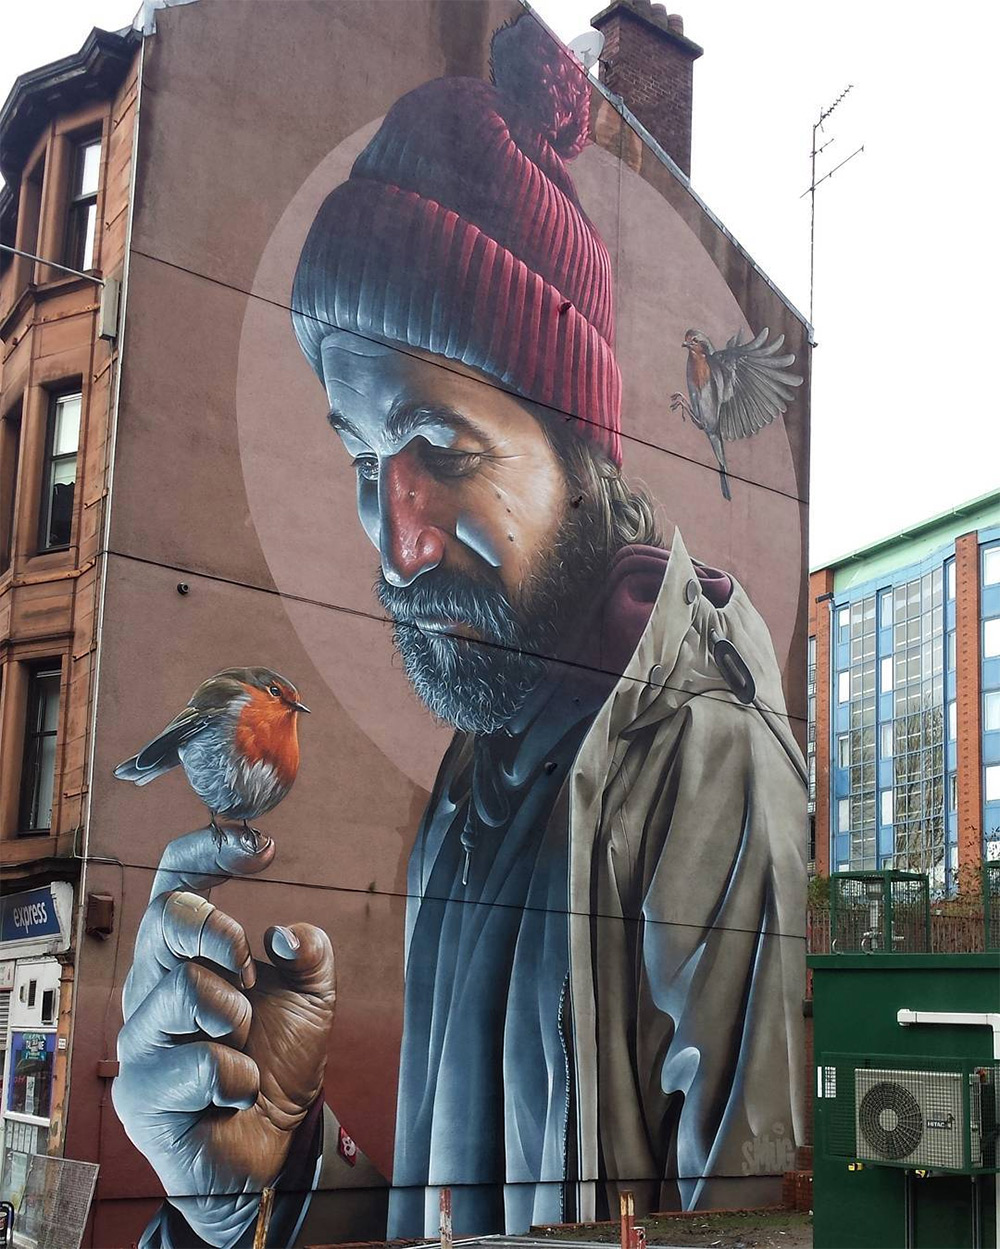 Mural by 'Smug' in Glasgow - thevandallist (1)